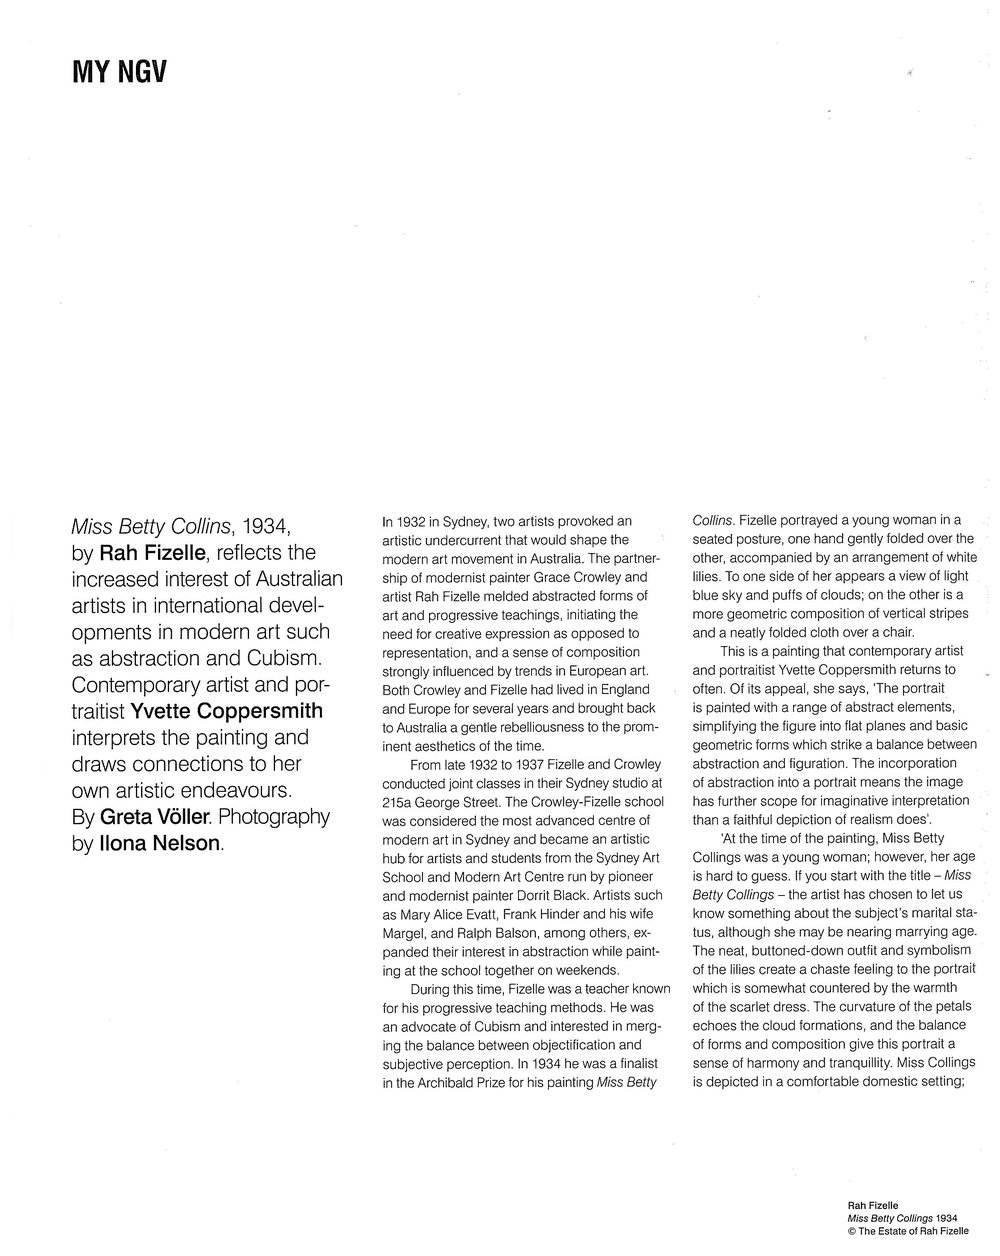 MY NGV National Gallery of Victoria, Magazine Greta Voller July/Aug Issue, p 78 - 81